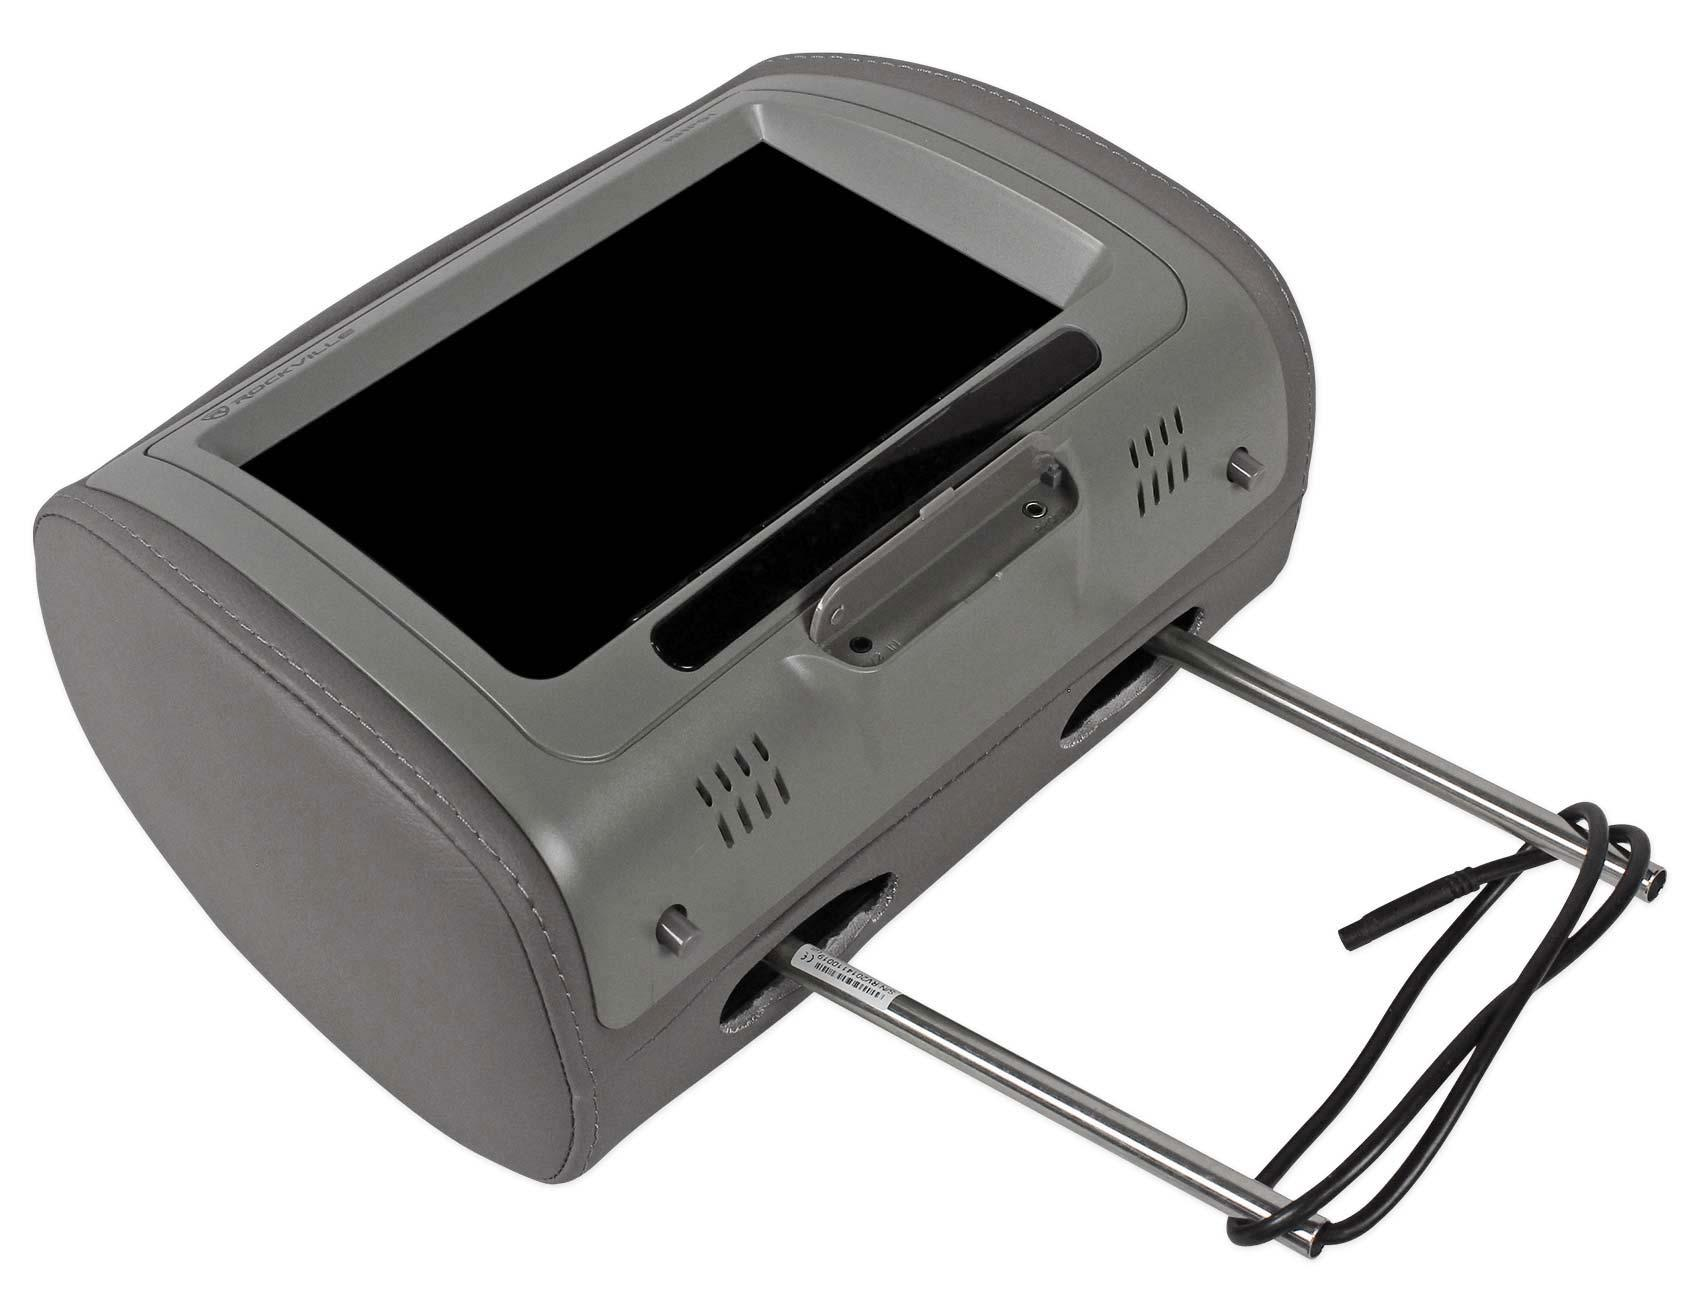 pyle 7-inch field monitor manual